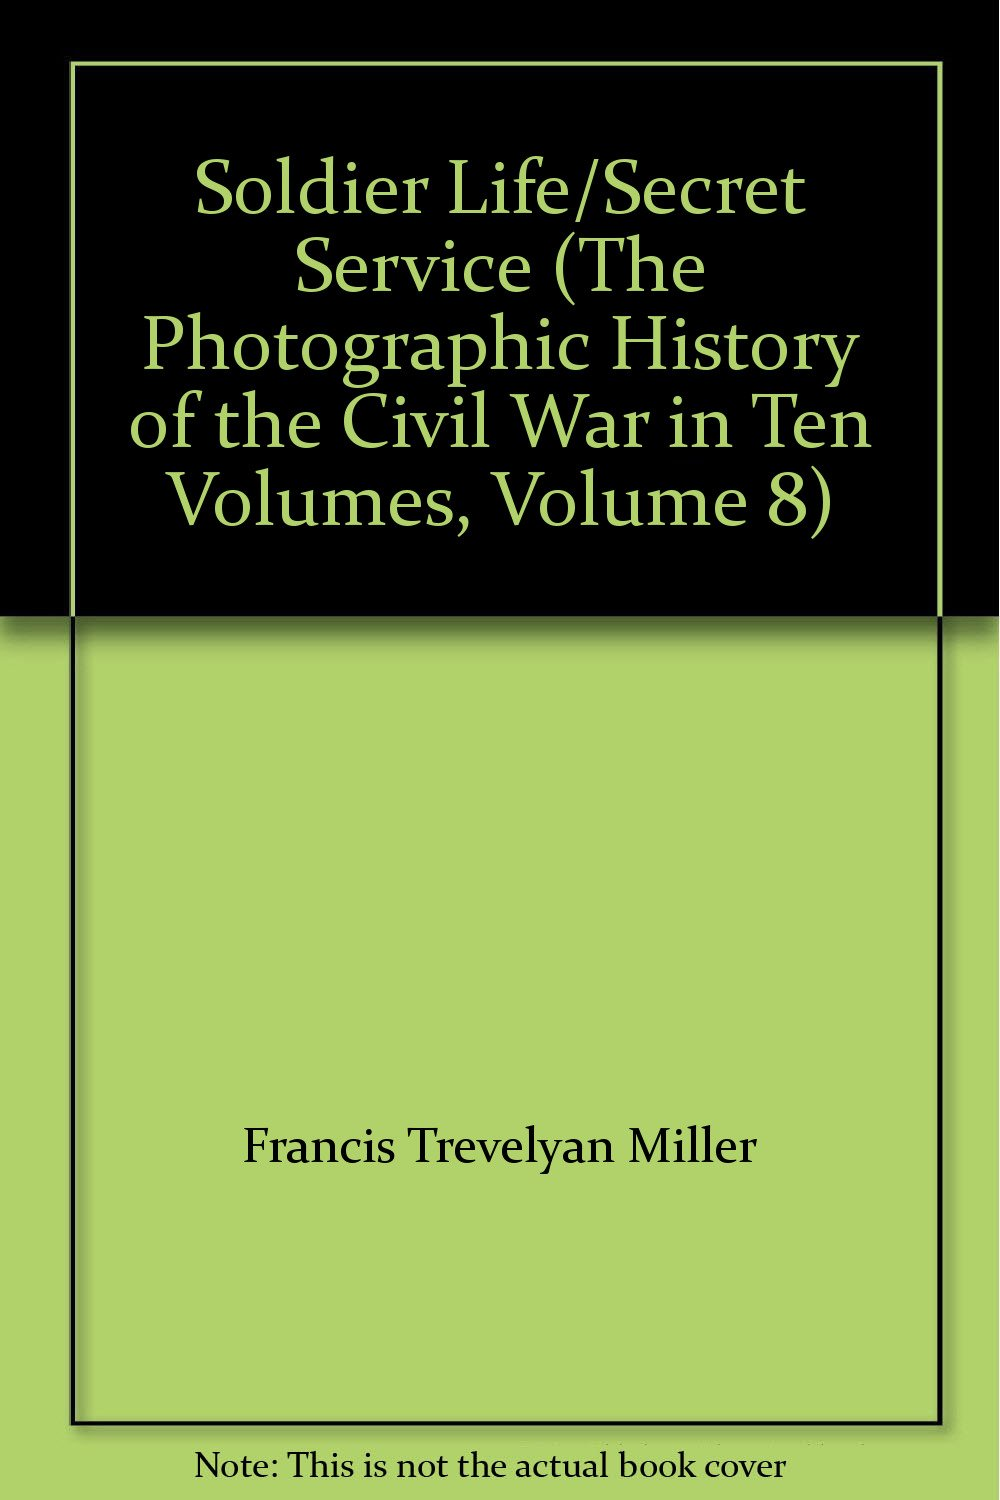 Download Soldier Life/Secret Service (The Photographic History of the Civil War in Ten Volumes, Volume 8) pdf epub